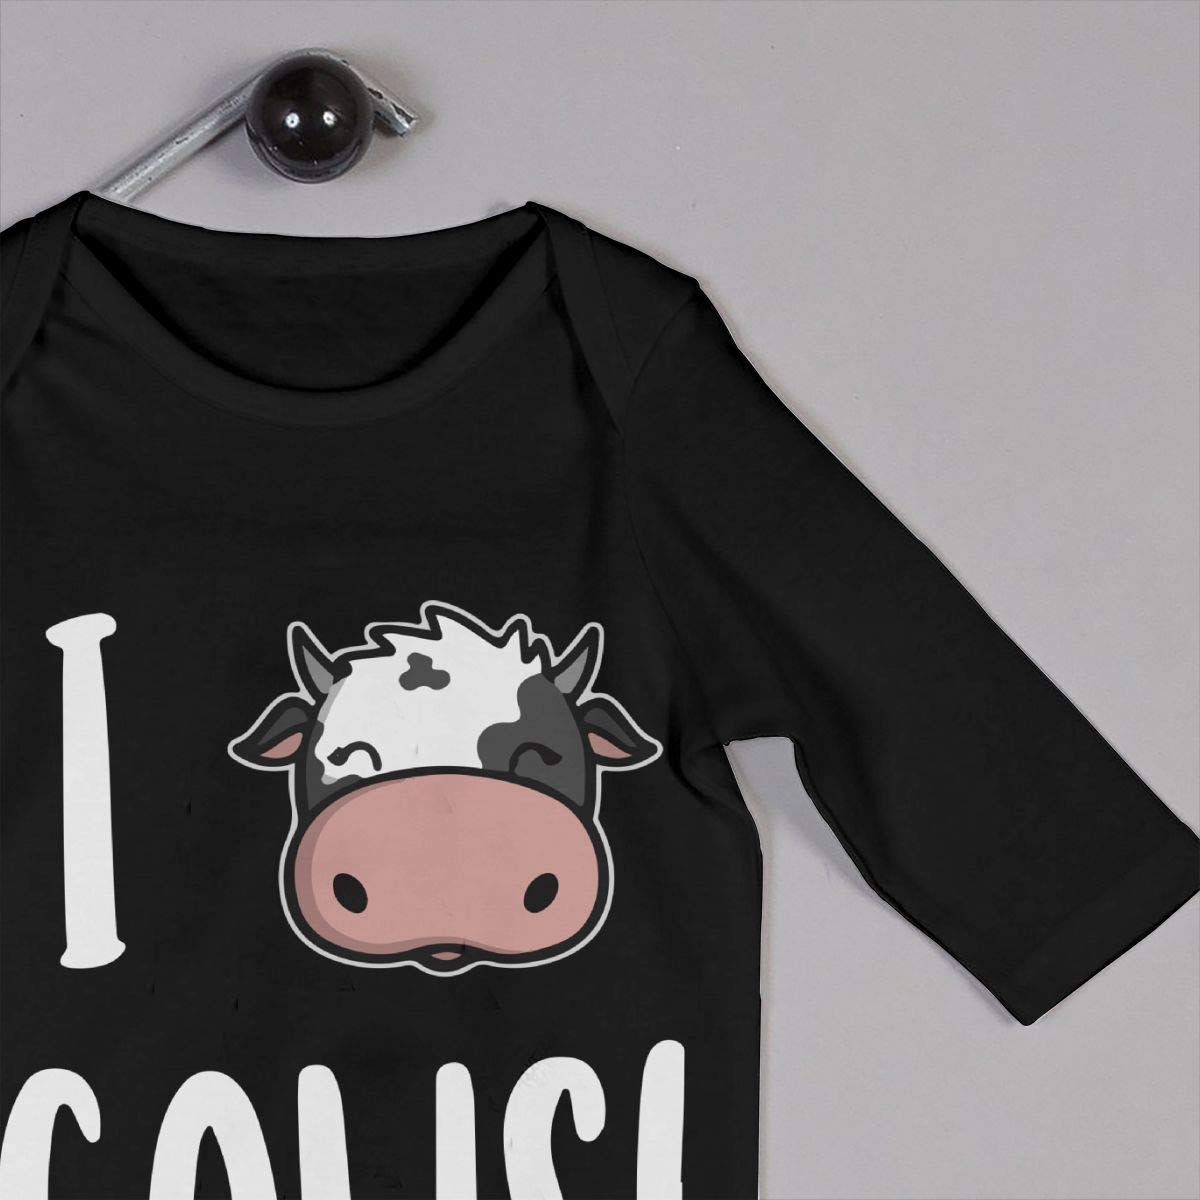 I Love Cows Baby Boy Girl Long Sleeve Romper Jumpsuit Baby Clothes Onsies